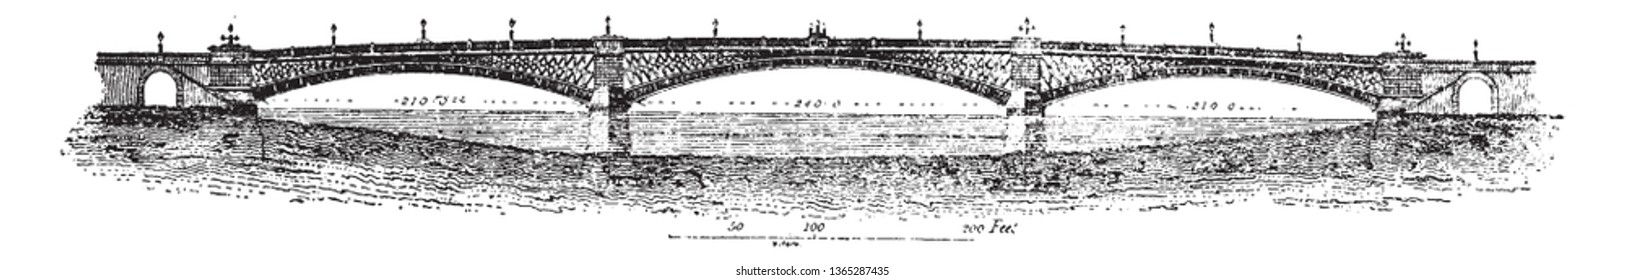 Southwark Bridge is an arch bridge in London England for traffic linking the district of Southwark, vintage line drawing or engraving illustration.